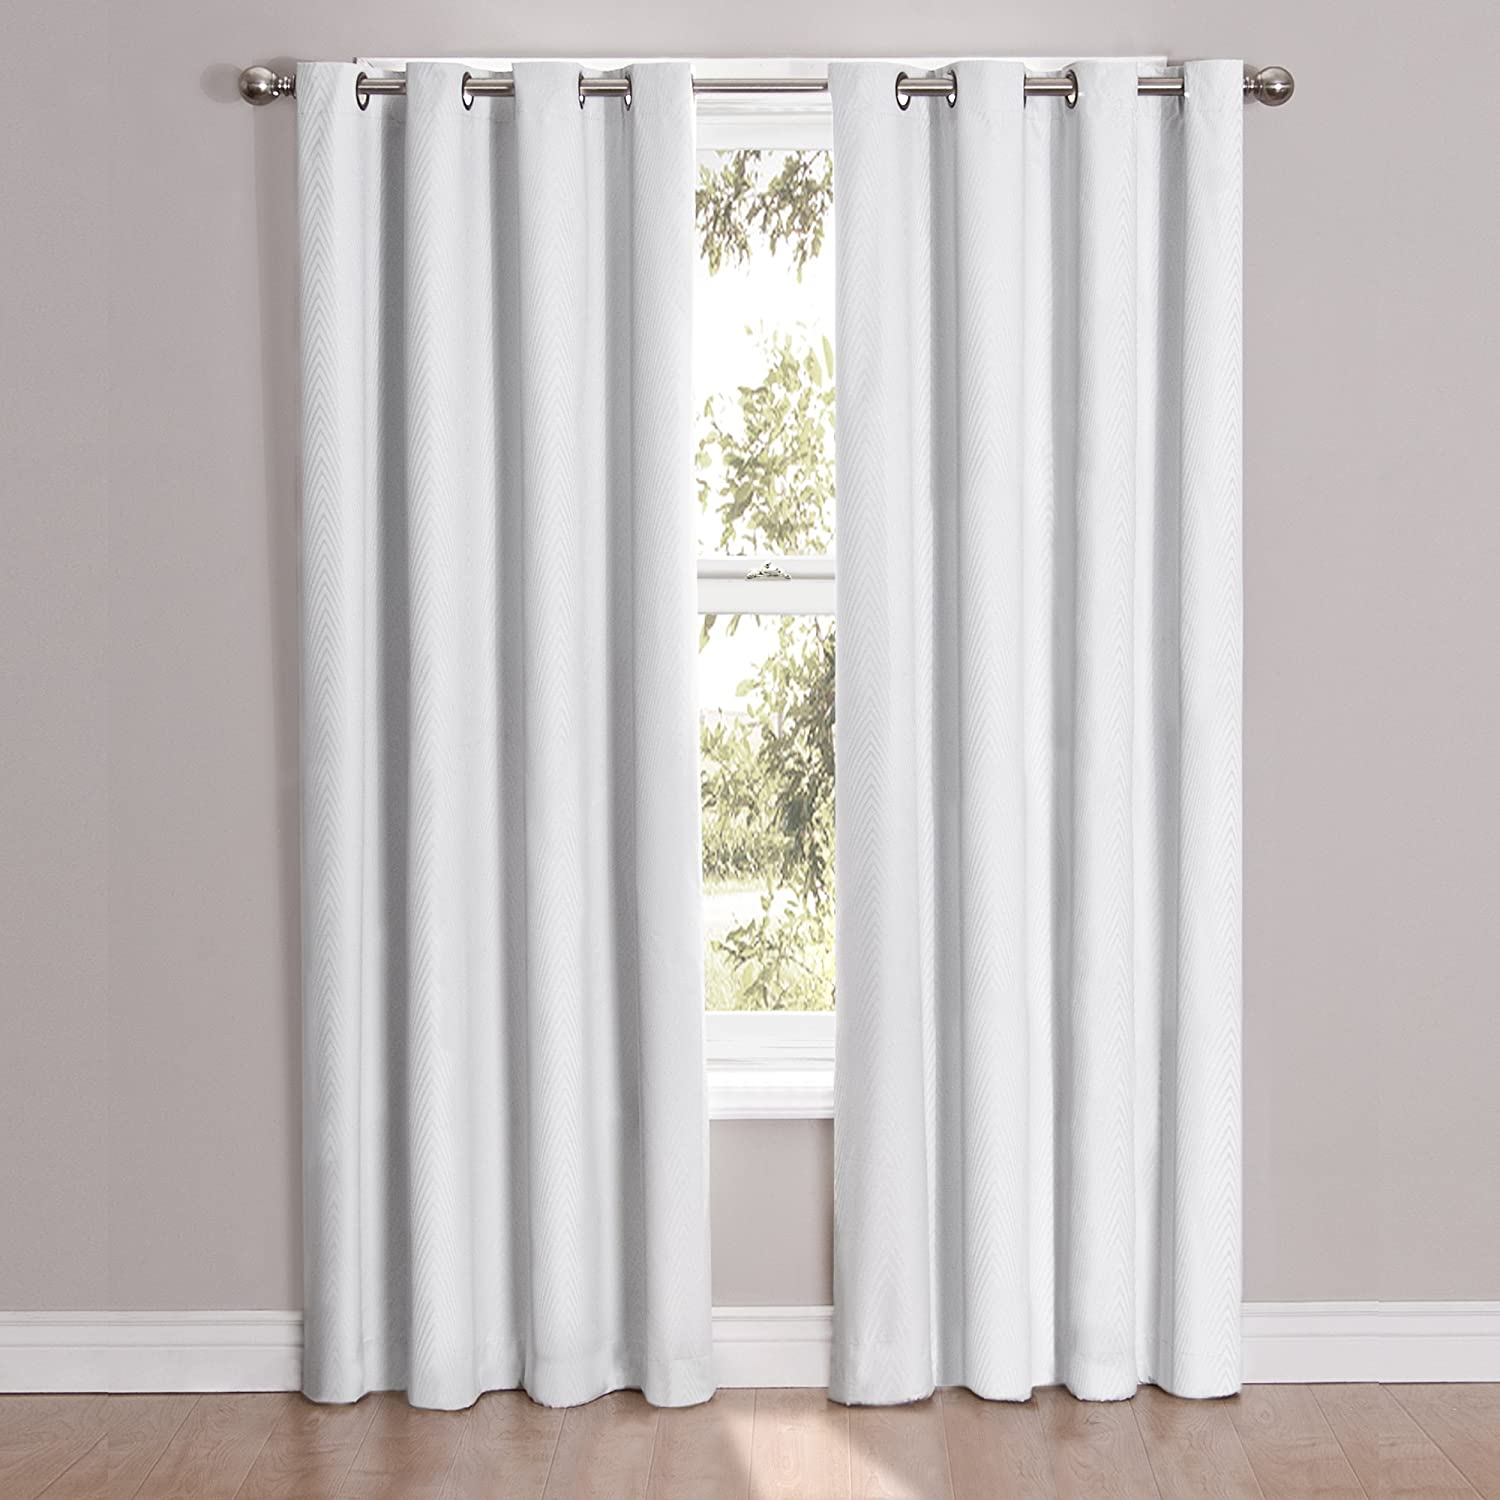 product garden design window shipping on home lined free curtains printed intelligent over orders blackout overstock curtain kennedy